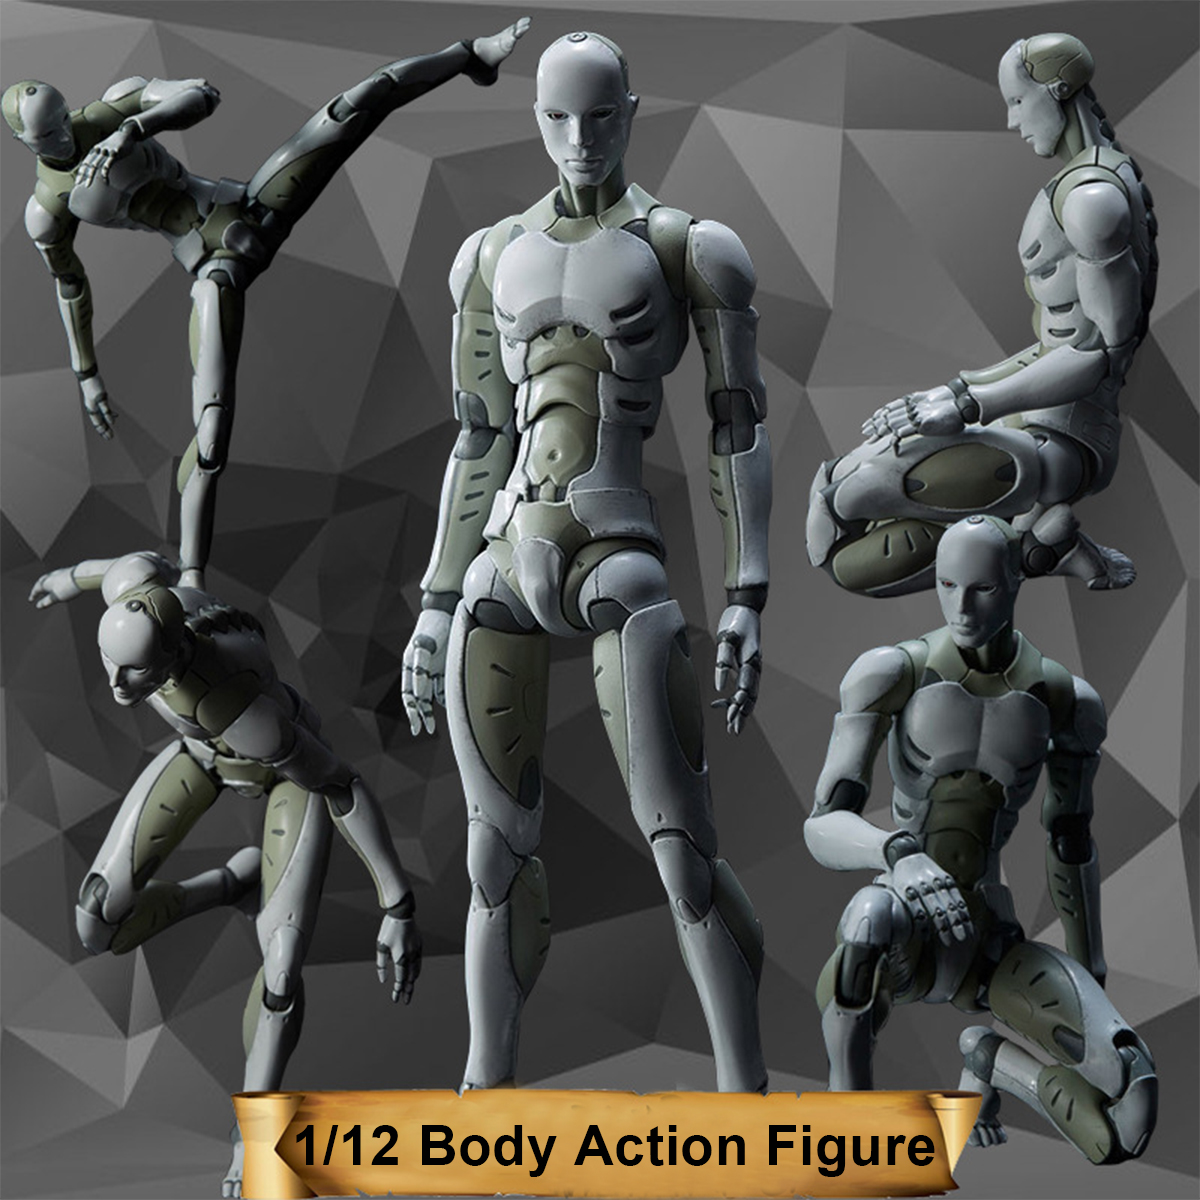 1/12 Synthetic Human Male Body Action Figure PVC Model Toys For Drawing Sketch Collectible Model Toy with box doub k action figure toys artist movable limbs male female 13cm joint body model mannequin bjd art sketch draw figures new style